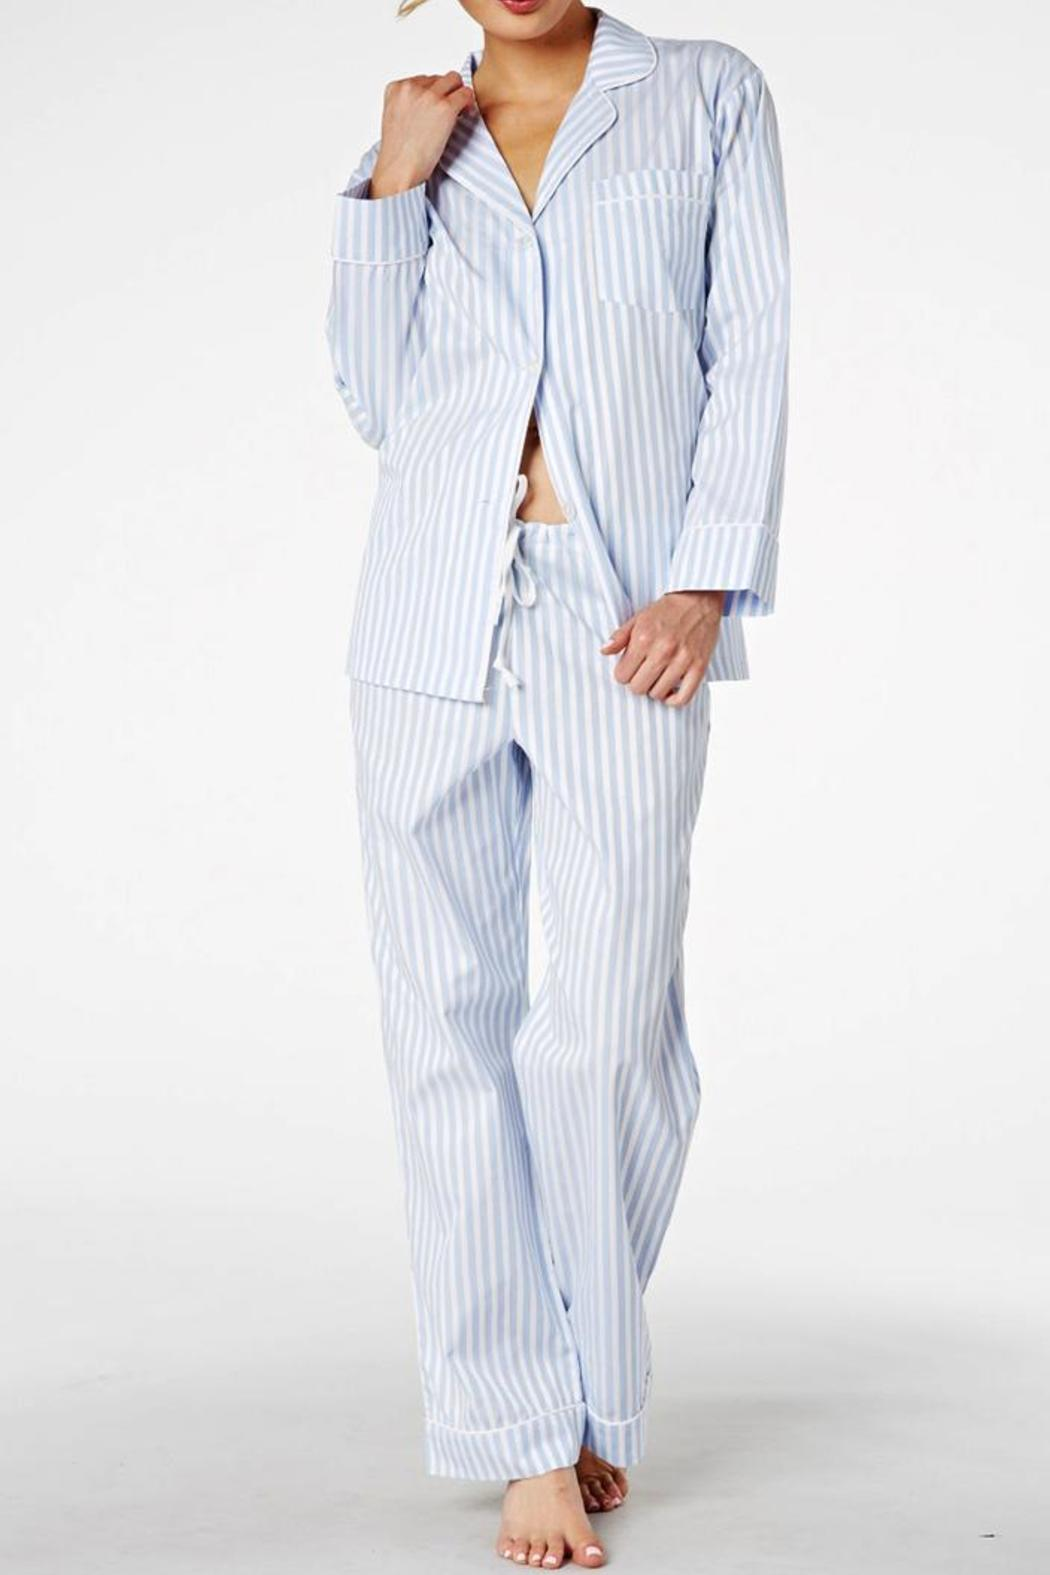 65d520b3 Bedhead Pajamas Blue Striped Pajamas from Massachusetts by Bloom ...